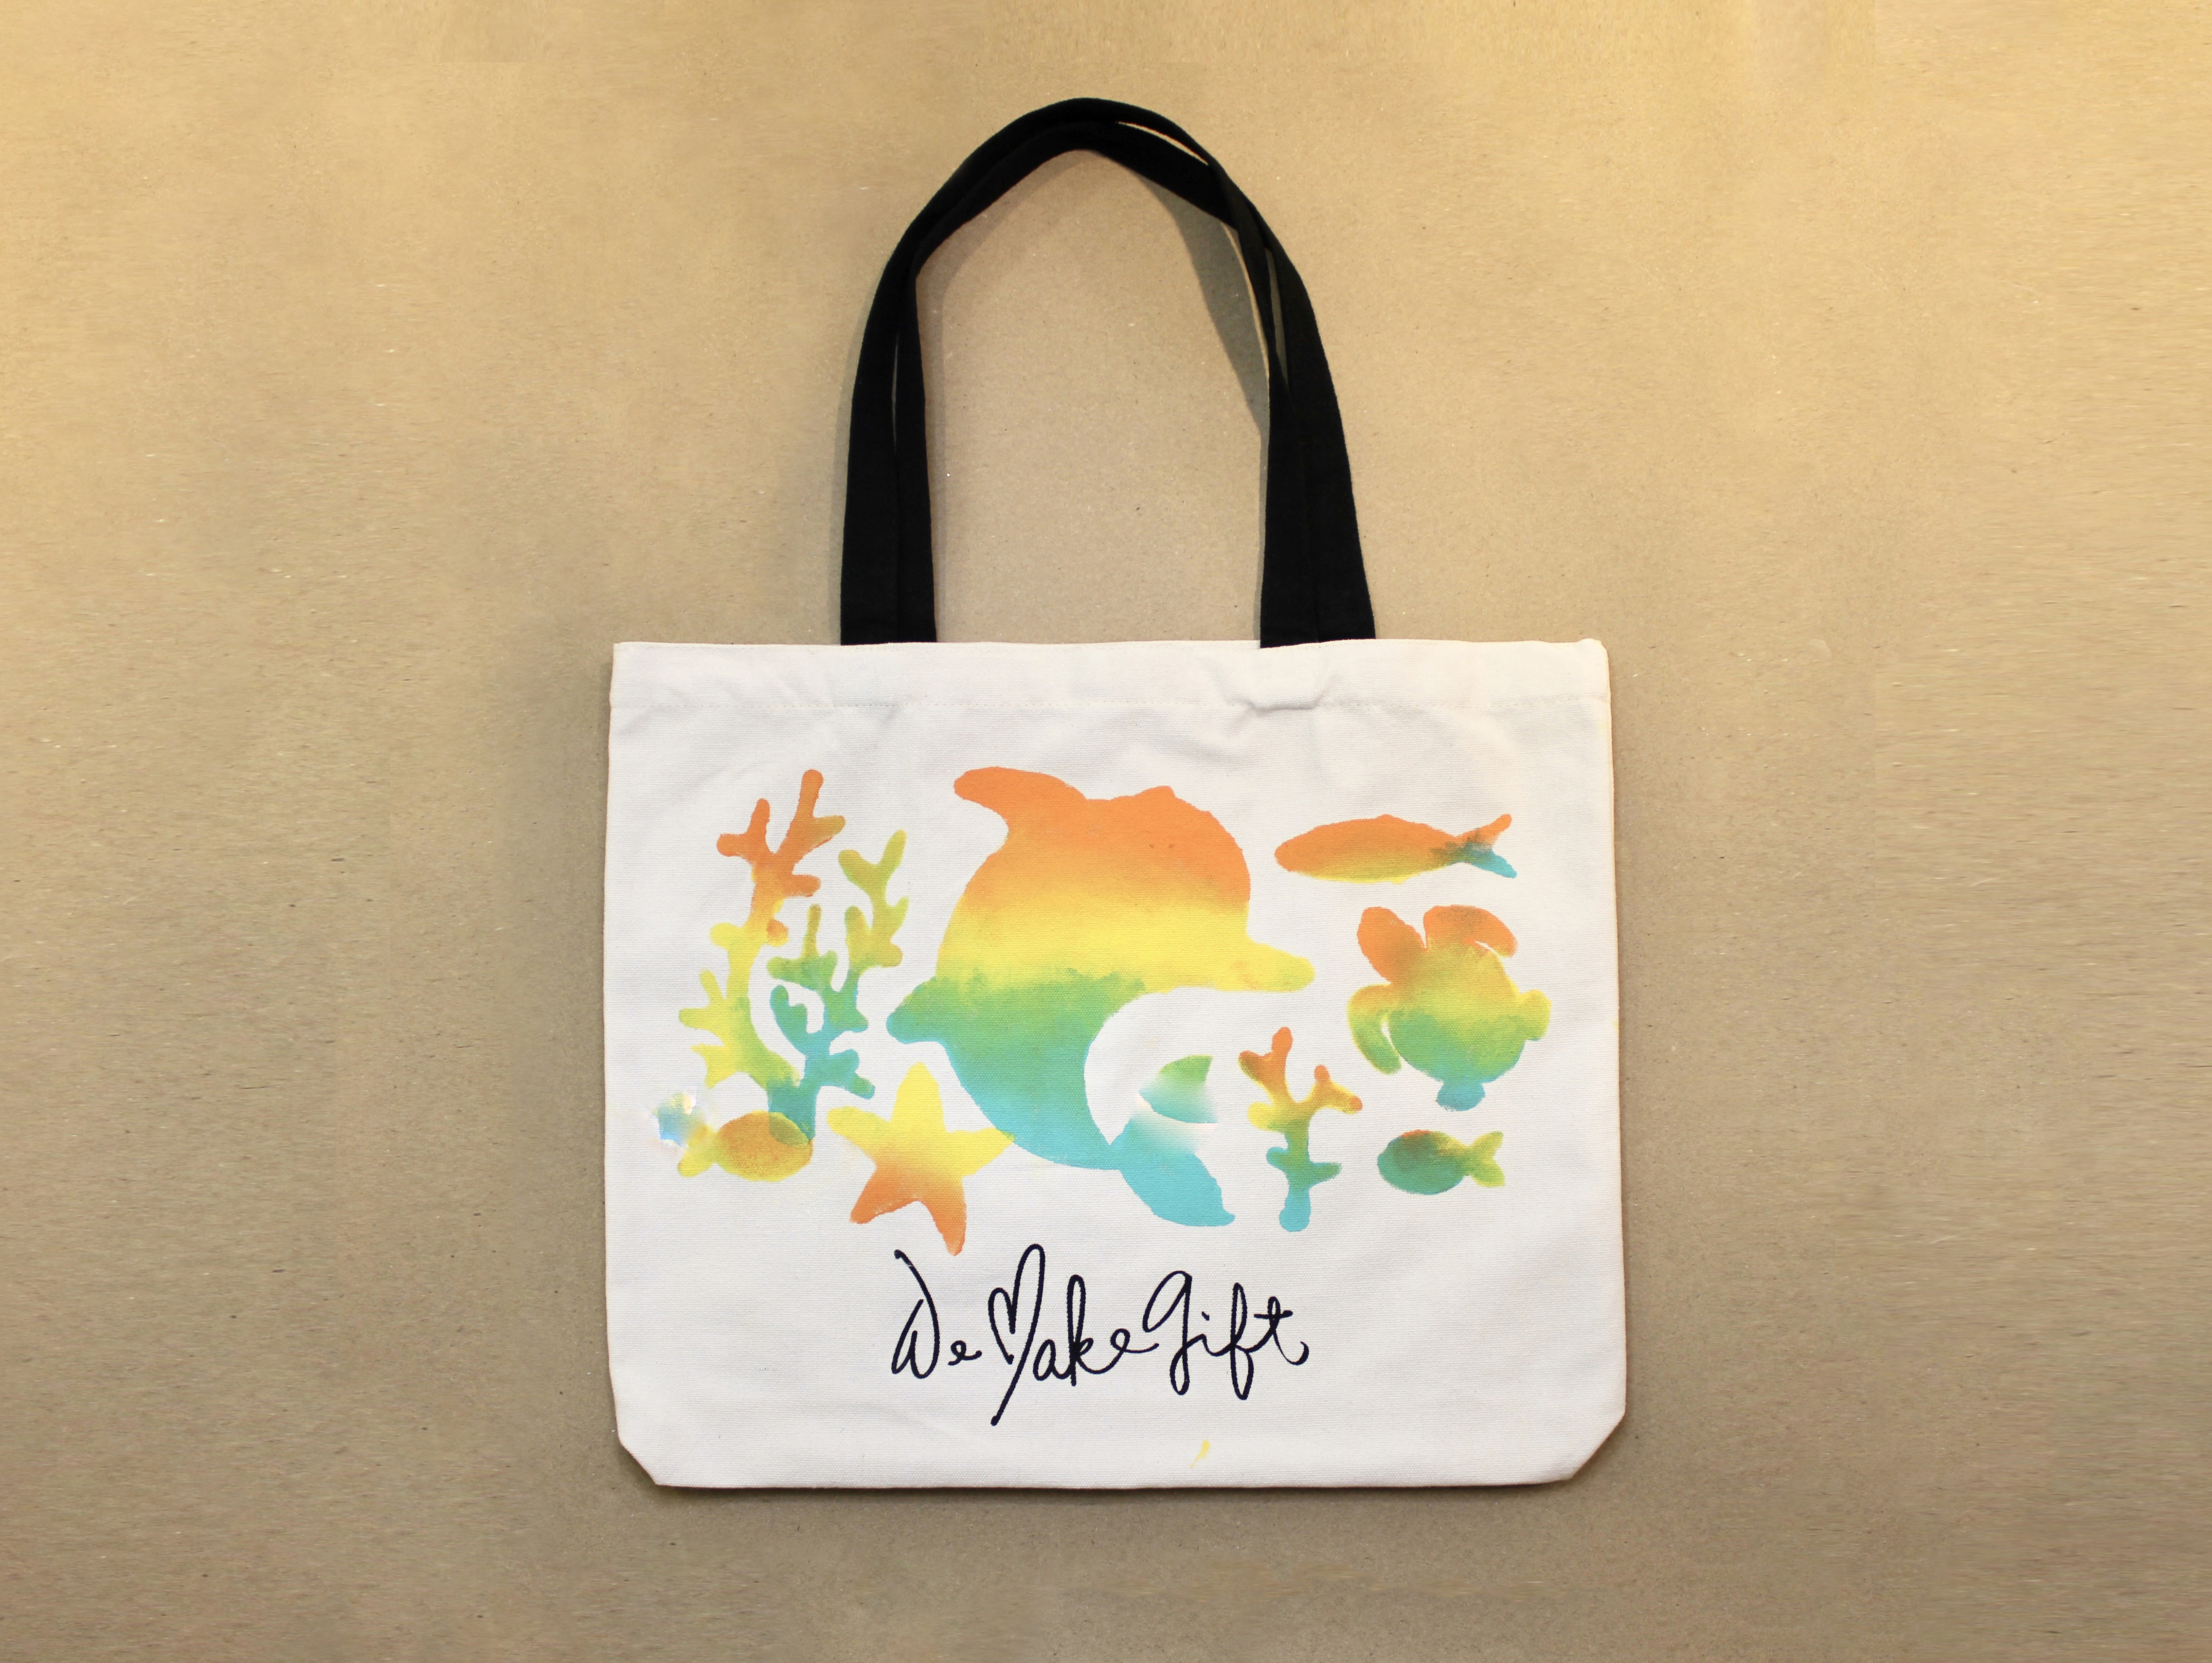 ◉★ Bag Painting